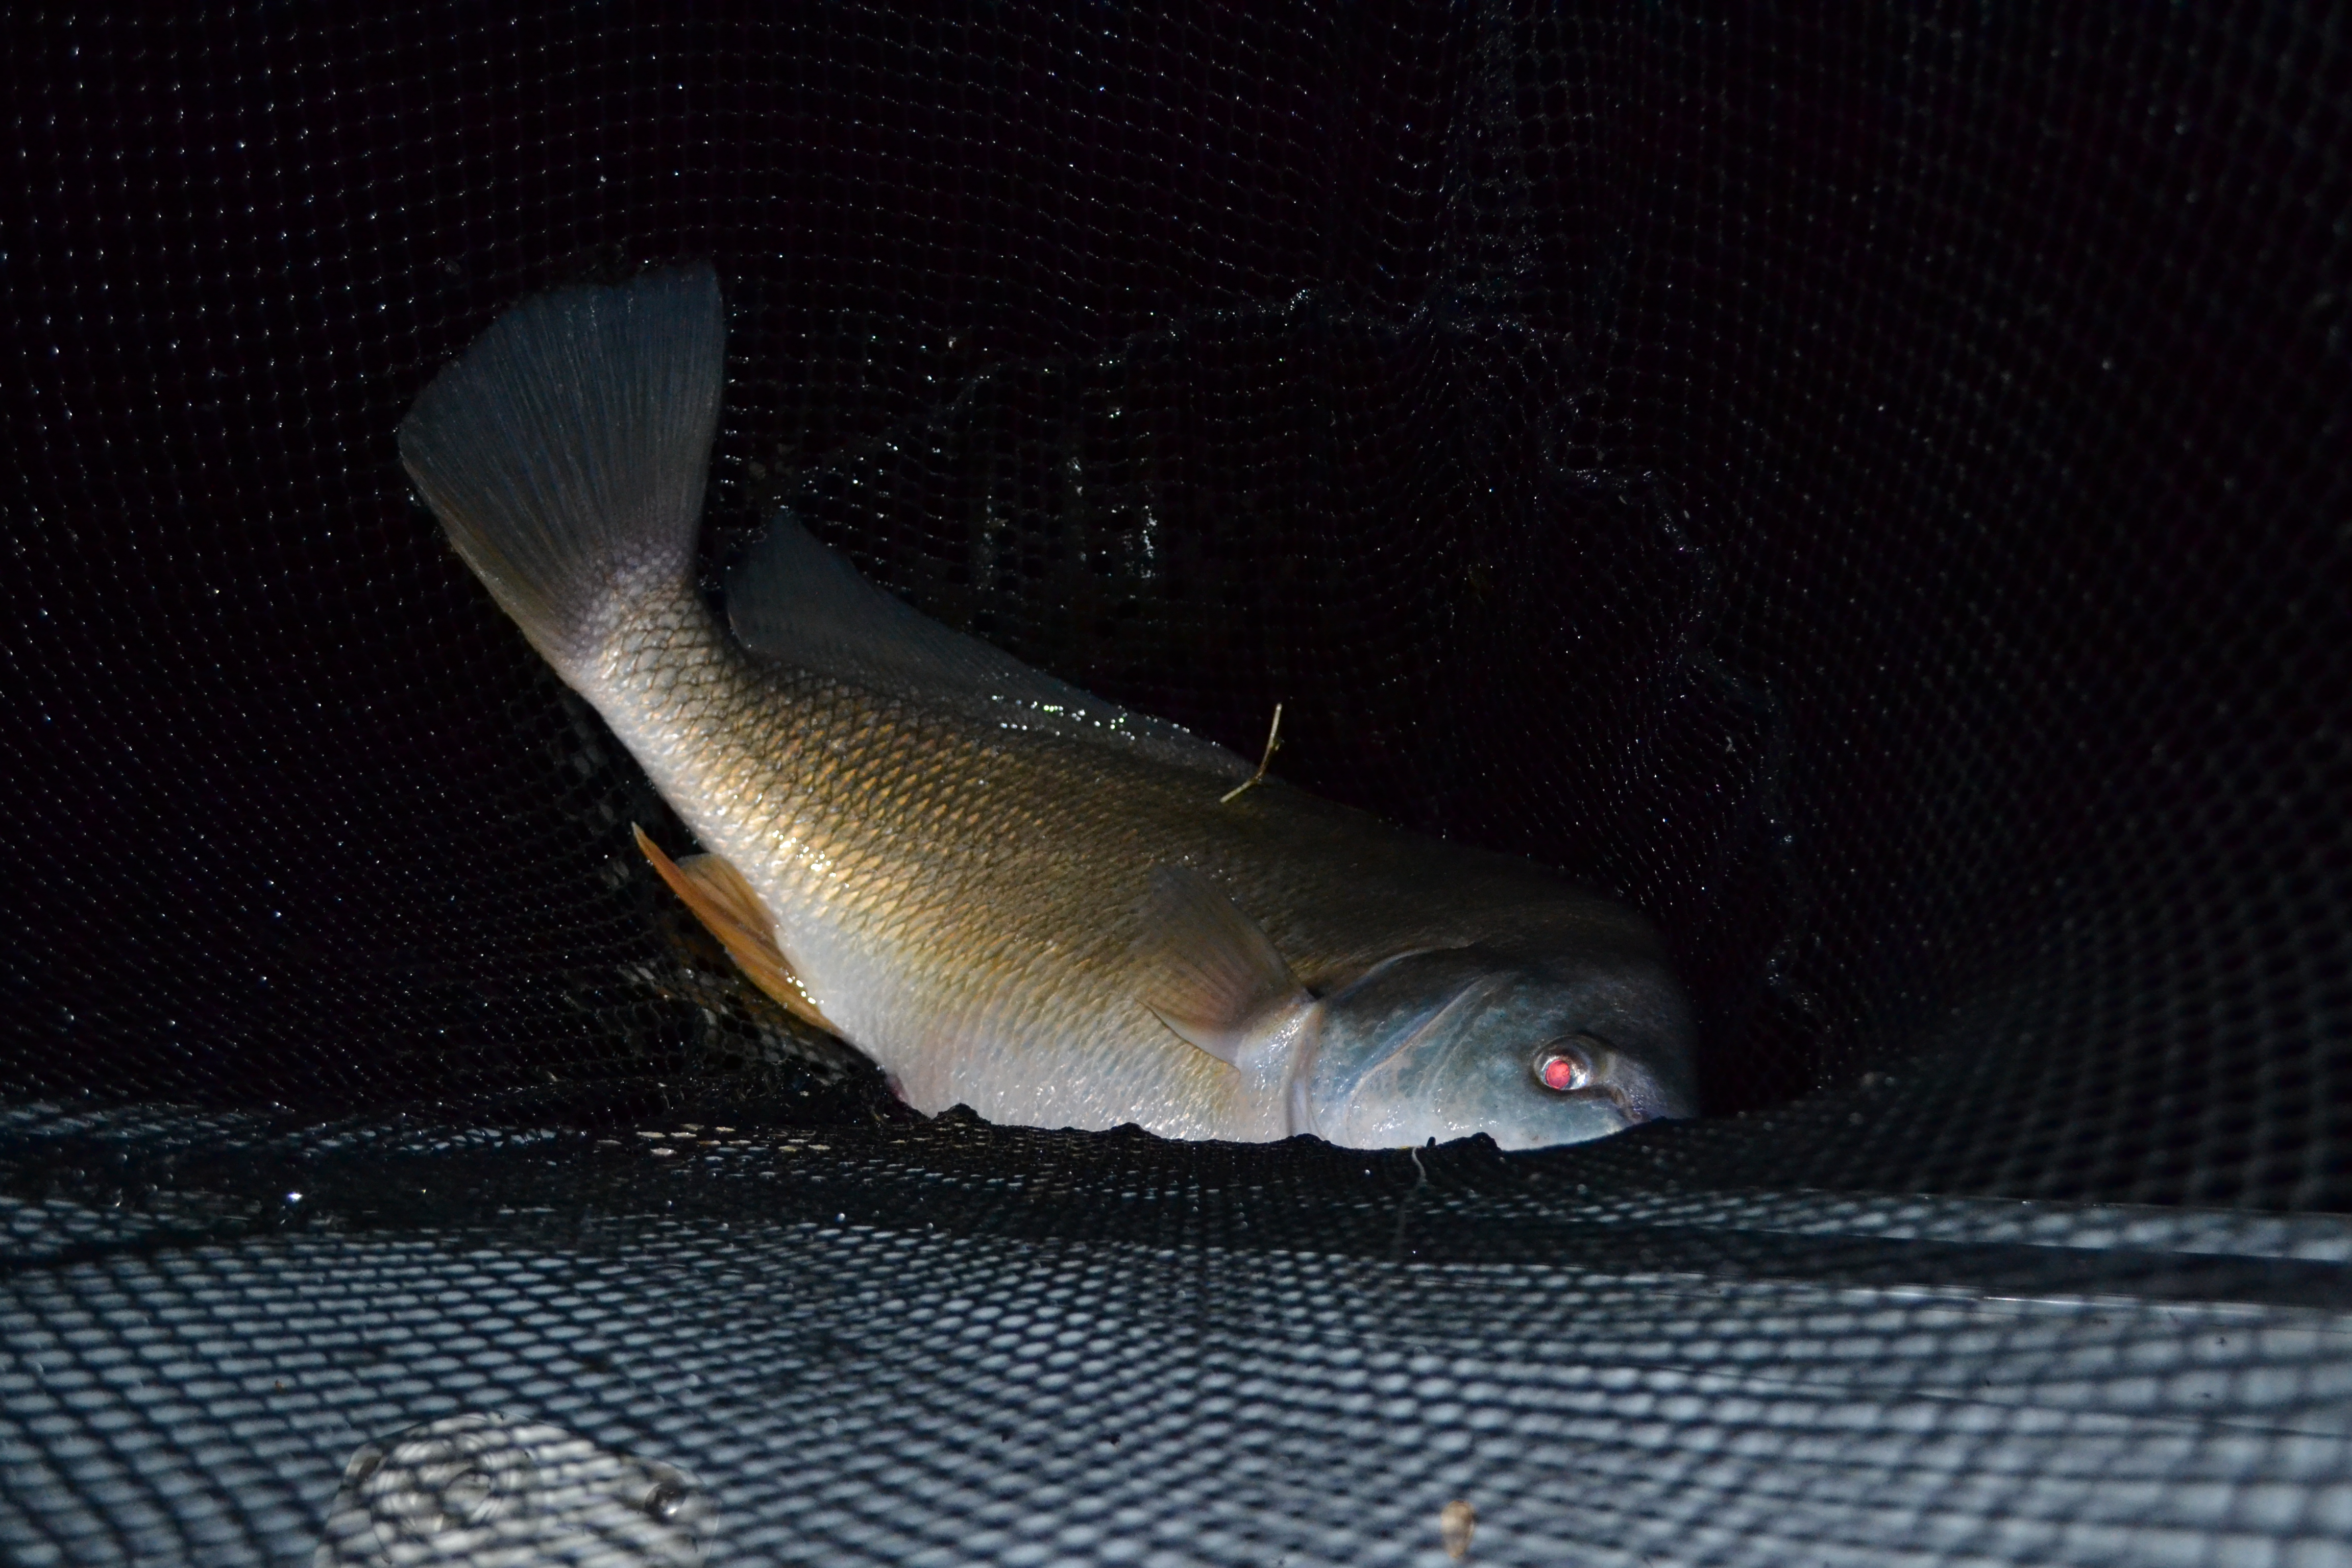 Bay Of Quinte Walleye Derby Night Fishing At Its Finest